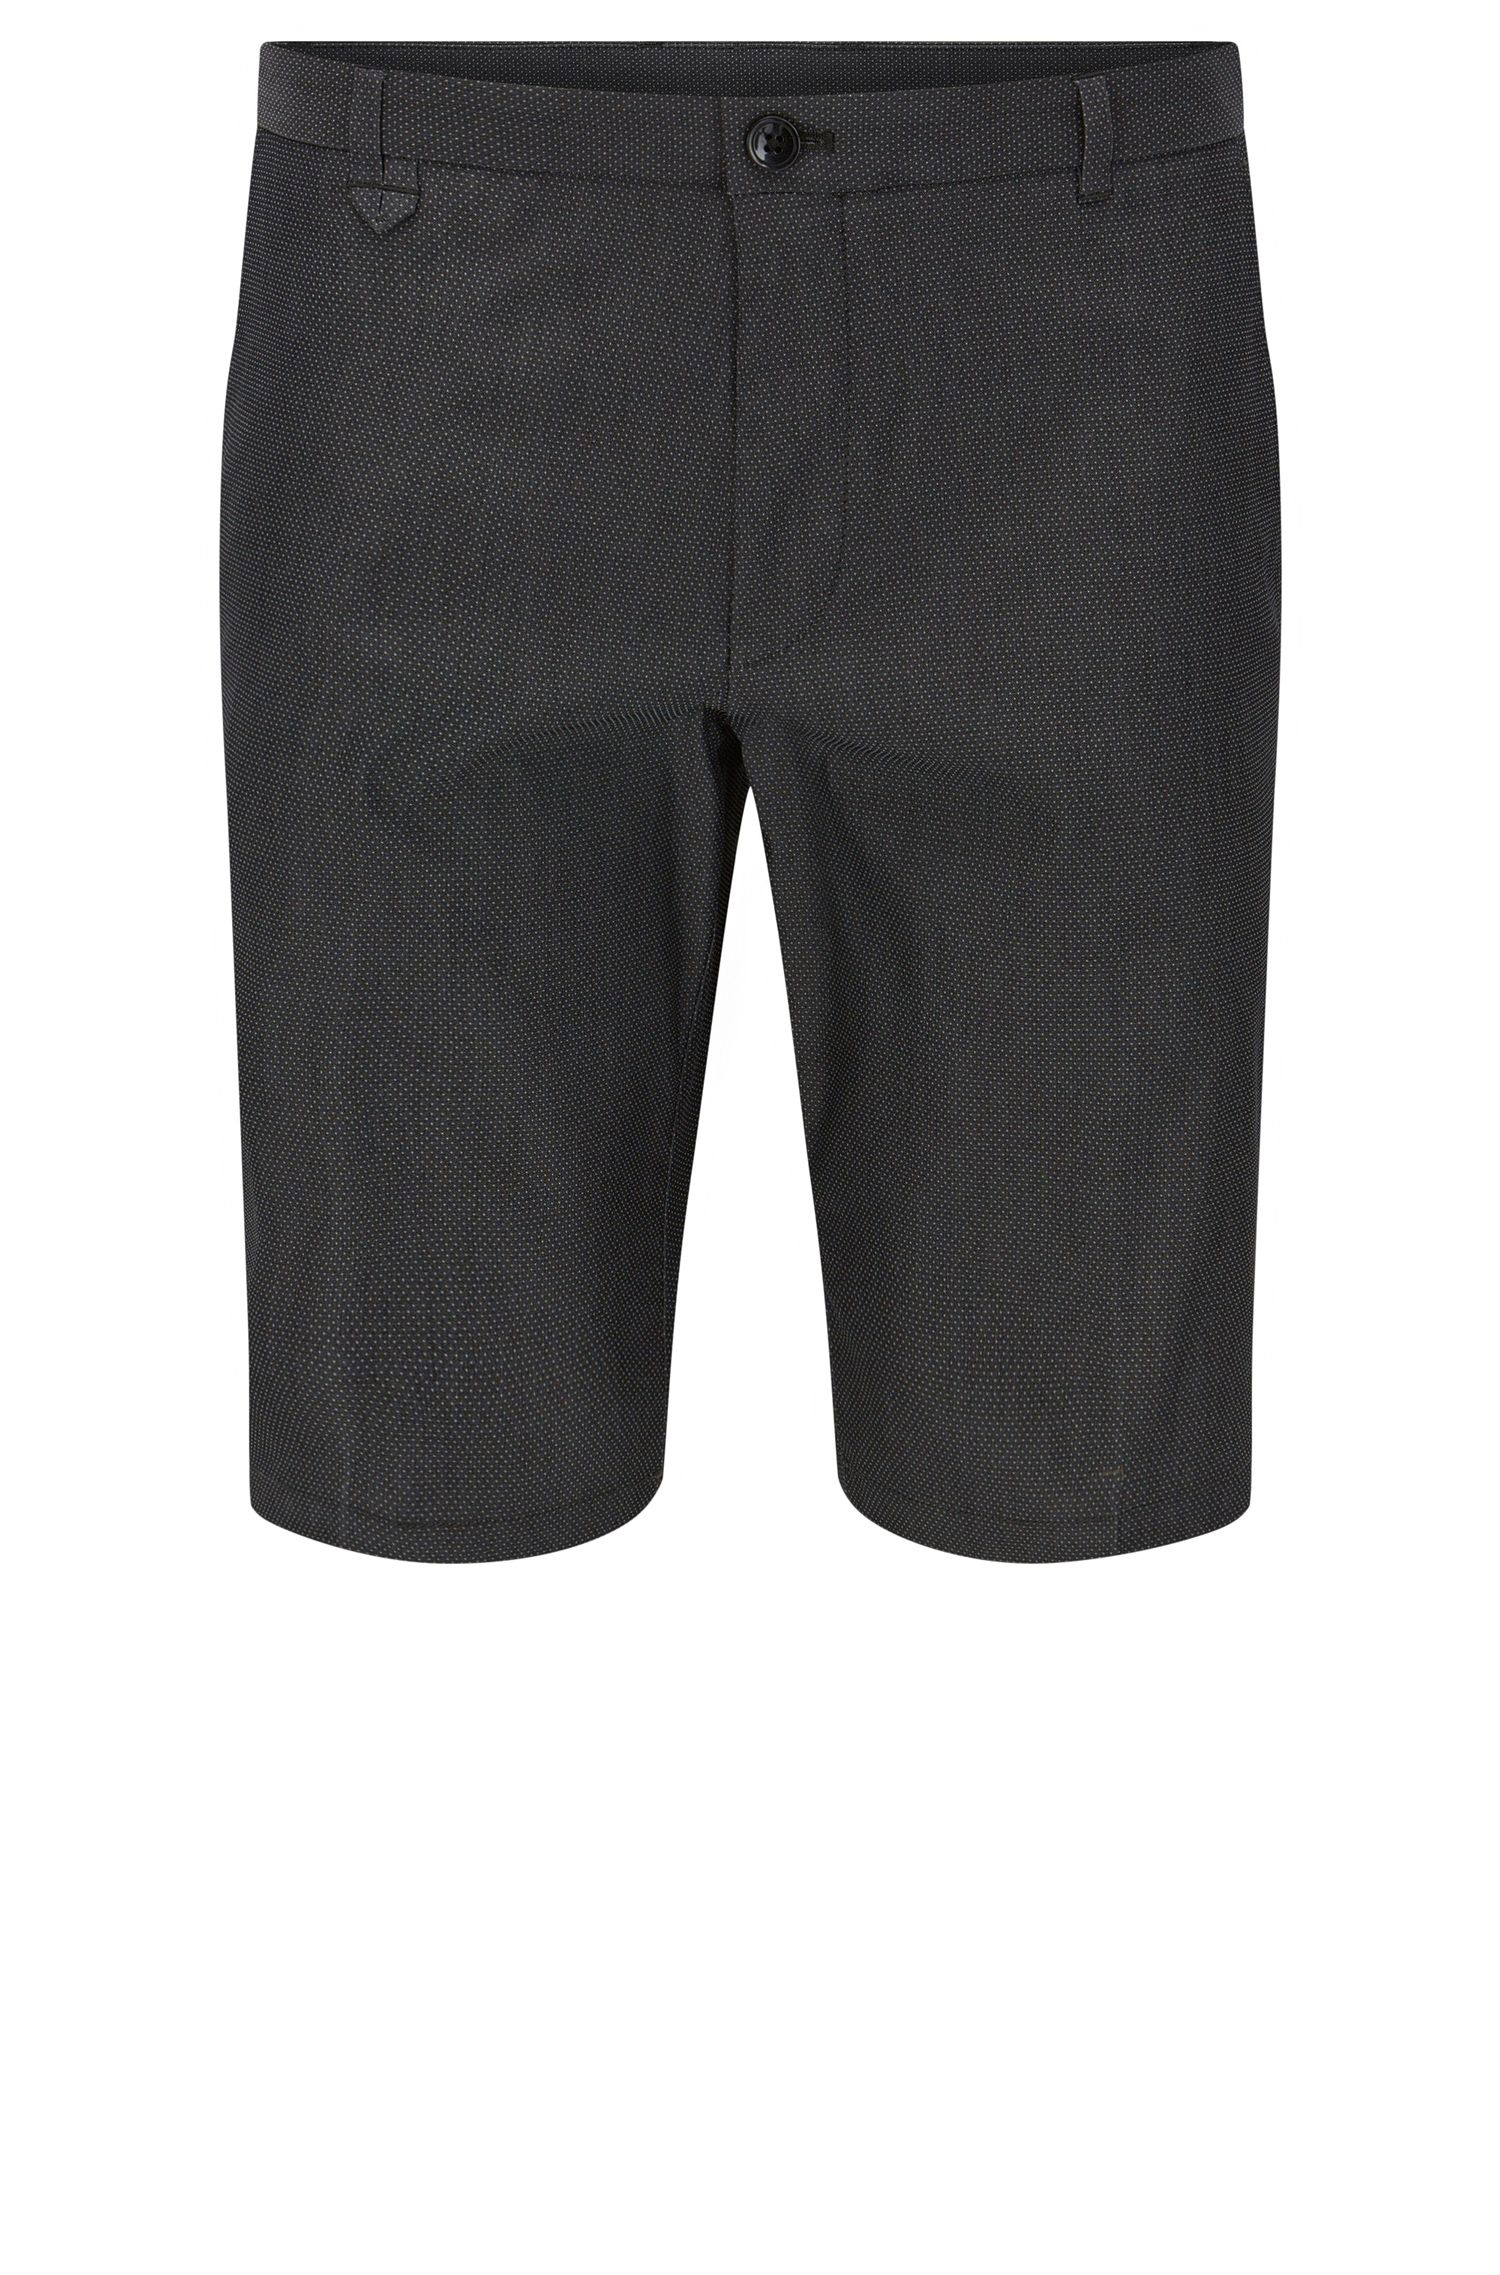 Gepunktete Slim-Fit Shorts aus Baumwoll-Mix: 'Hano3'